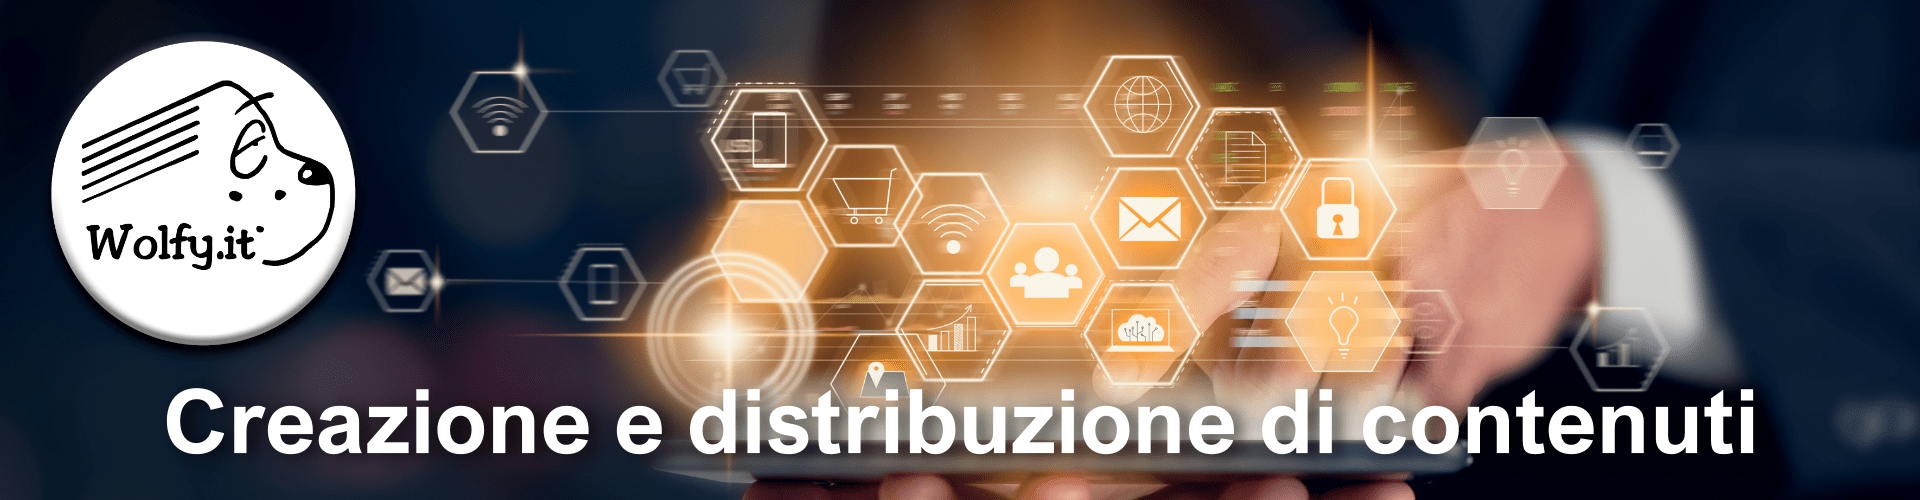 Podcast Evolution per fare business con l'audiovisivo